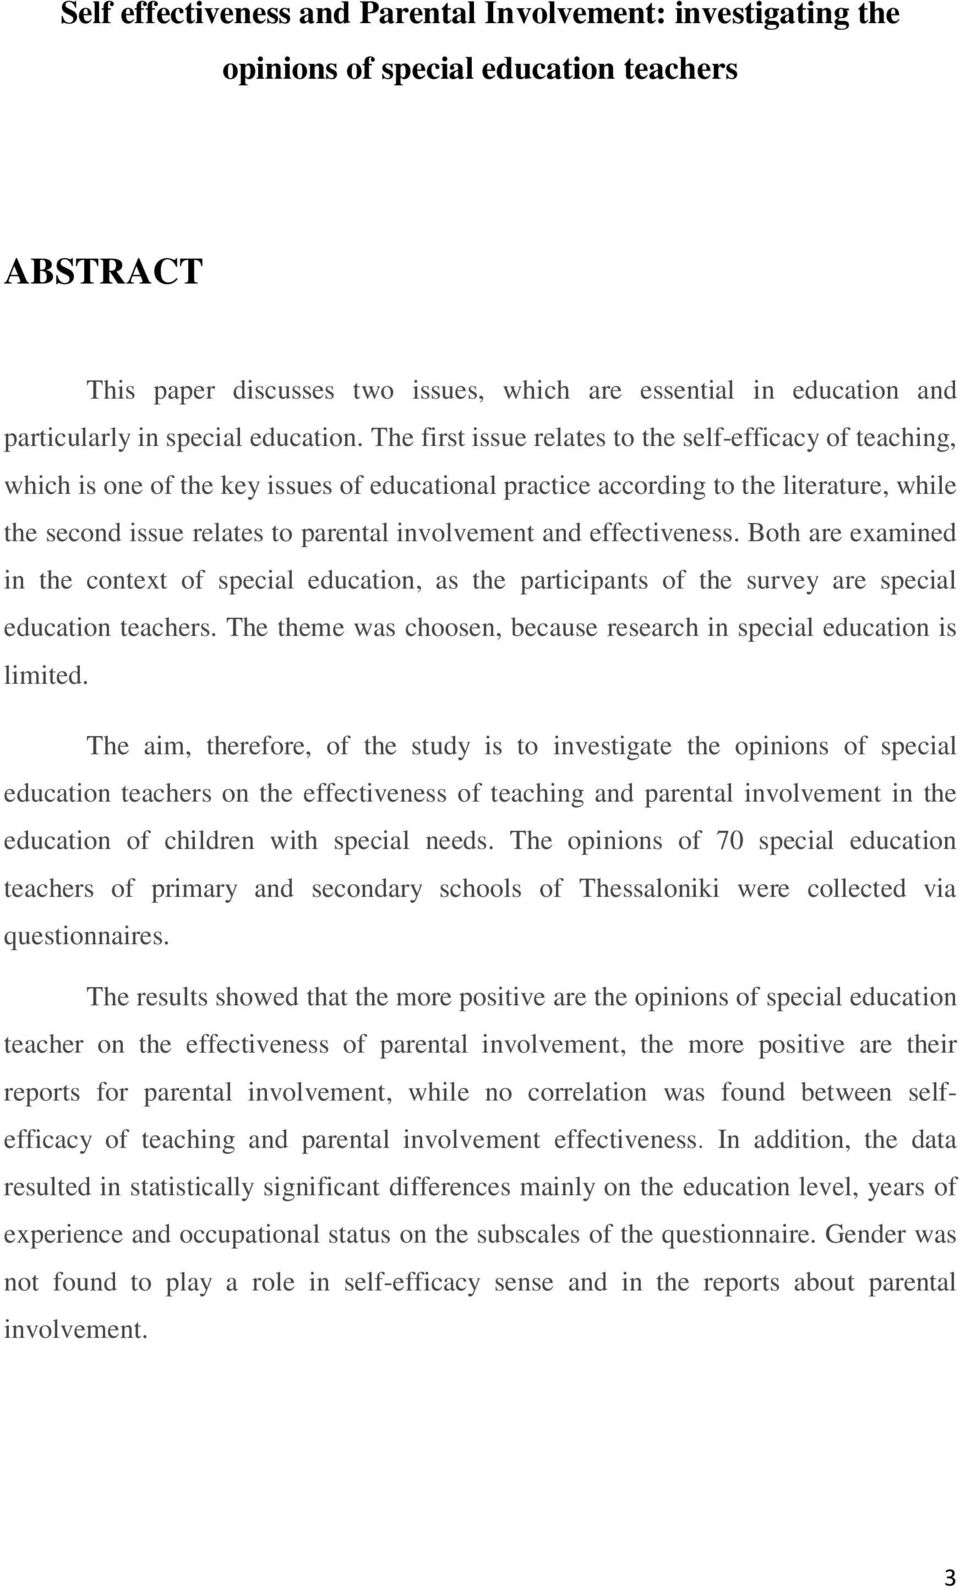 The first issue relates to the self-efficacy of teaching, which is one of the key issues of educational practice according to the literature, while the second issue relates to parental involvement